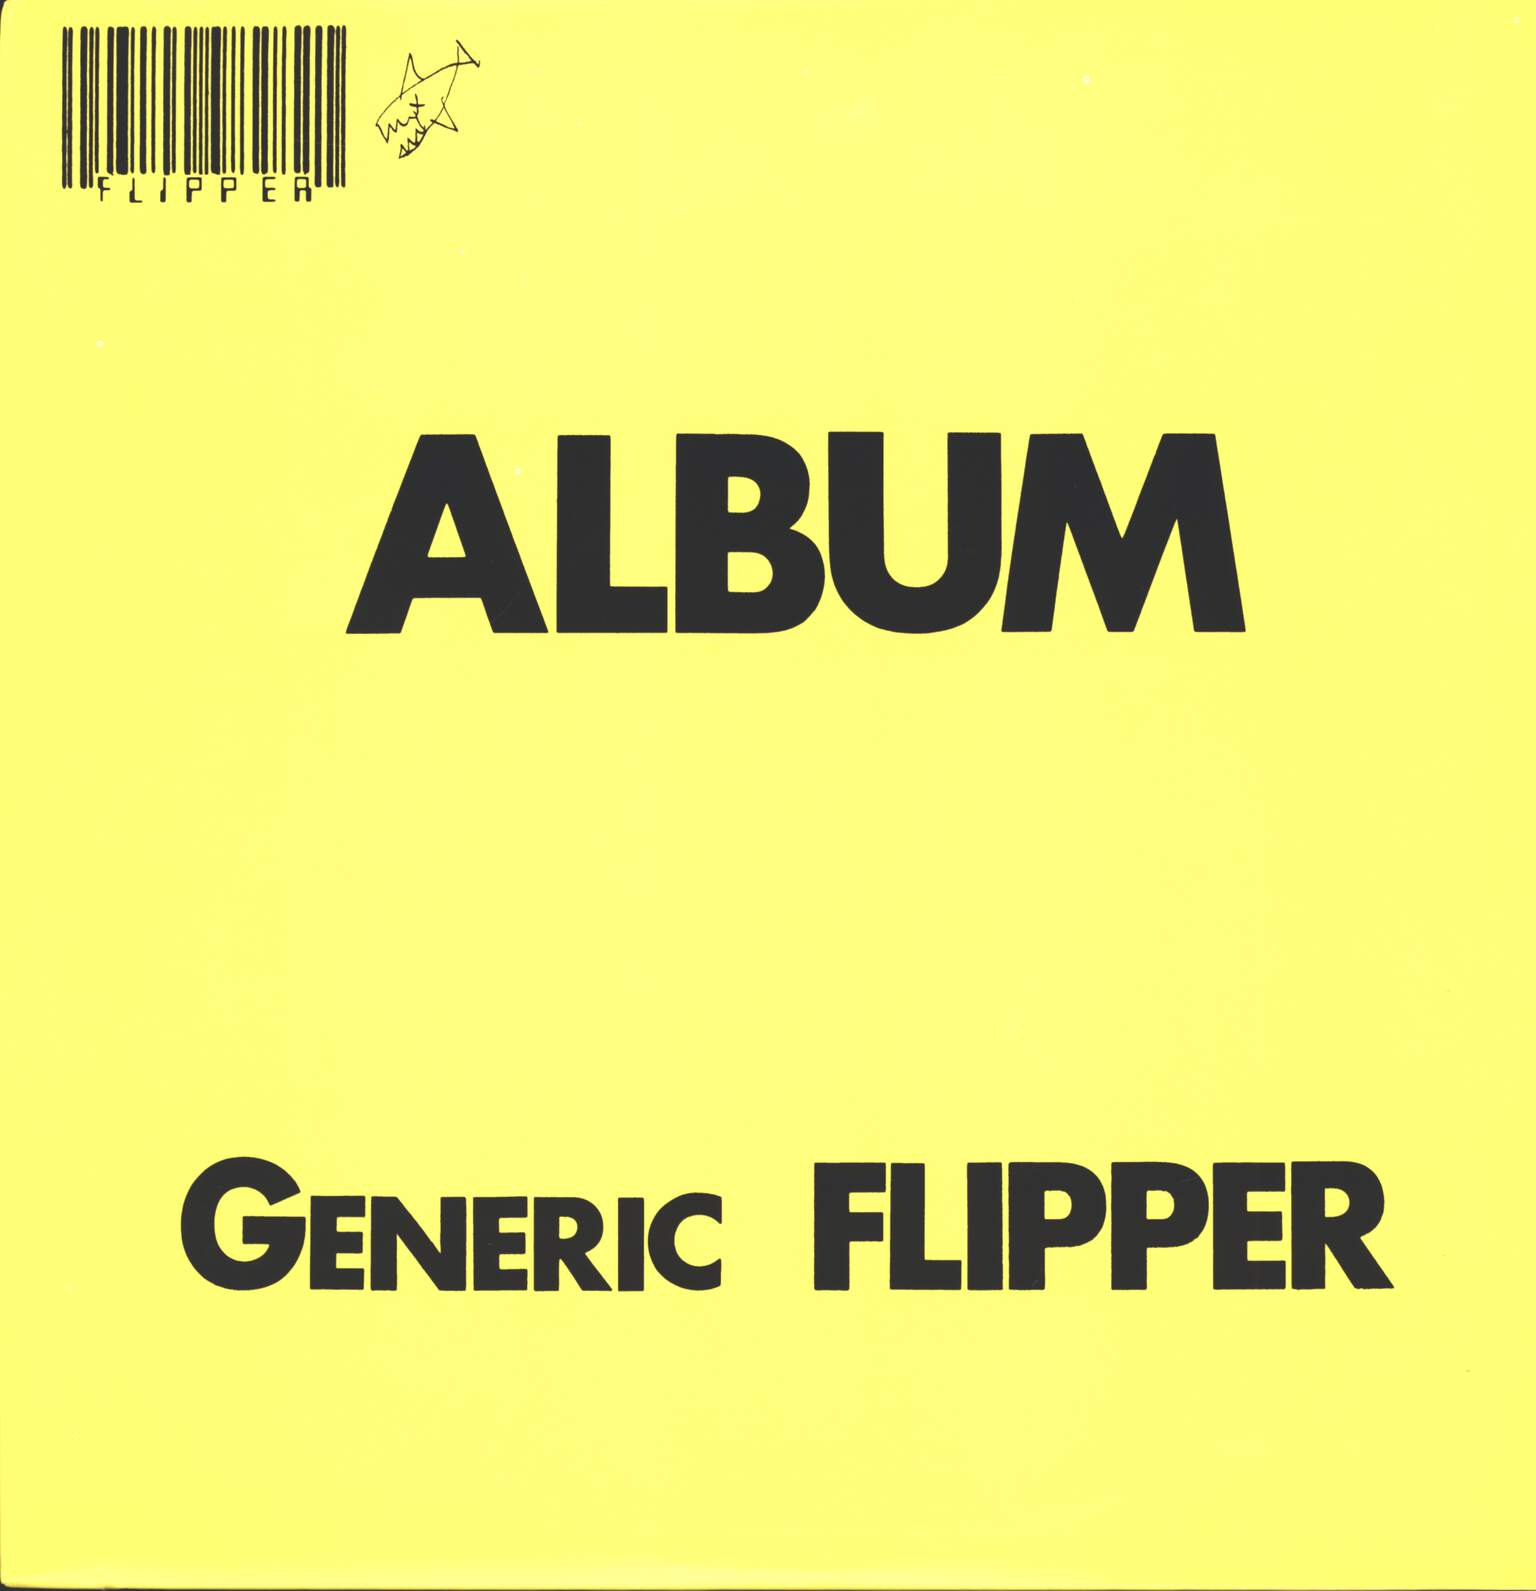 Flipper: Album Generic Flipper, LP (Vinyl)